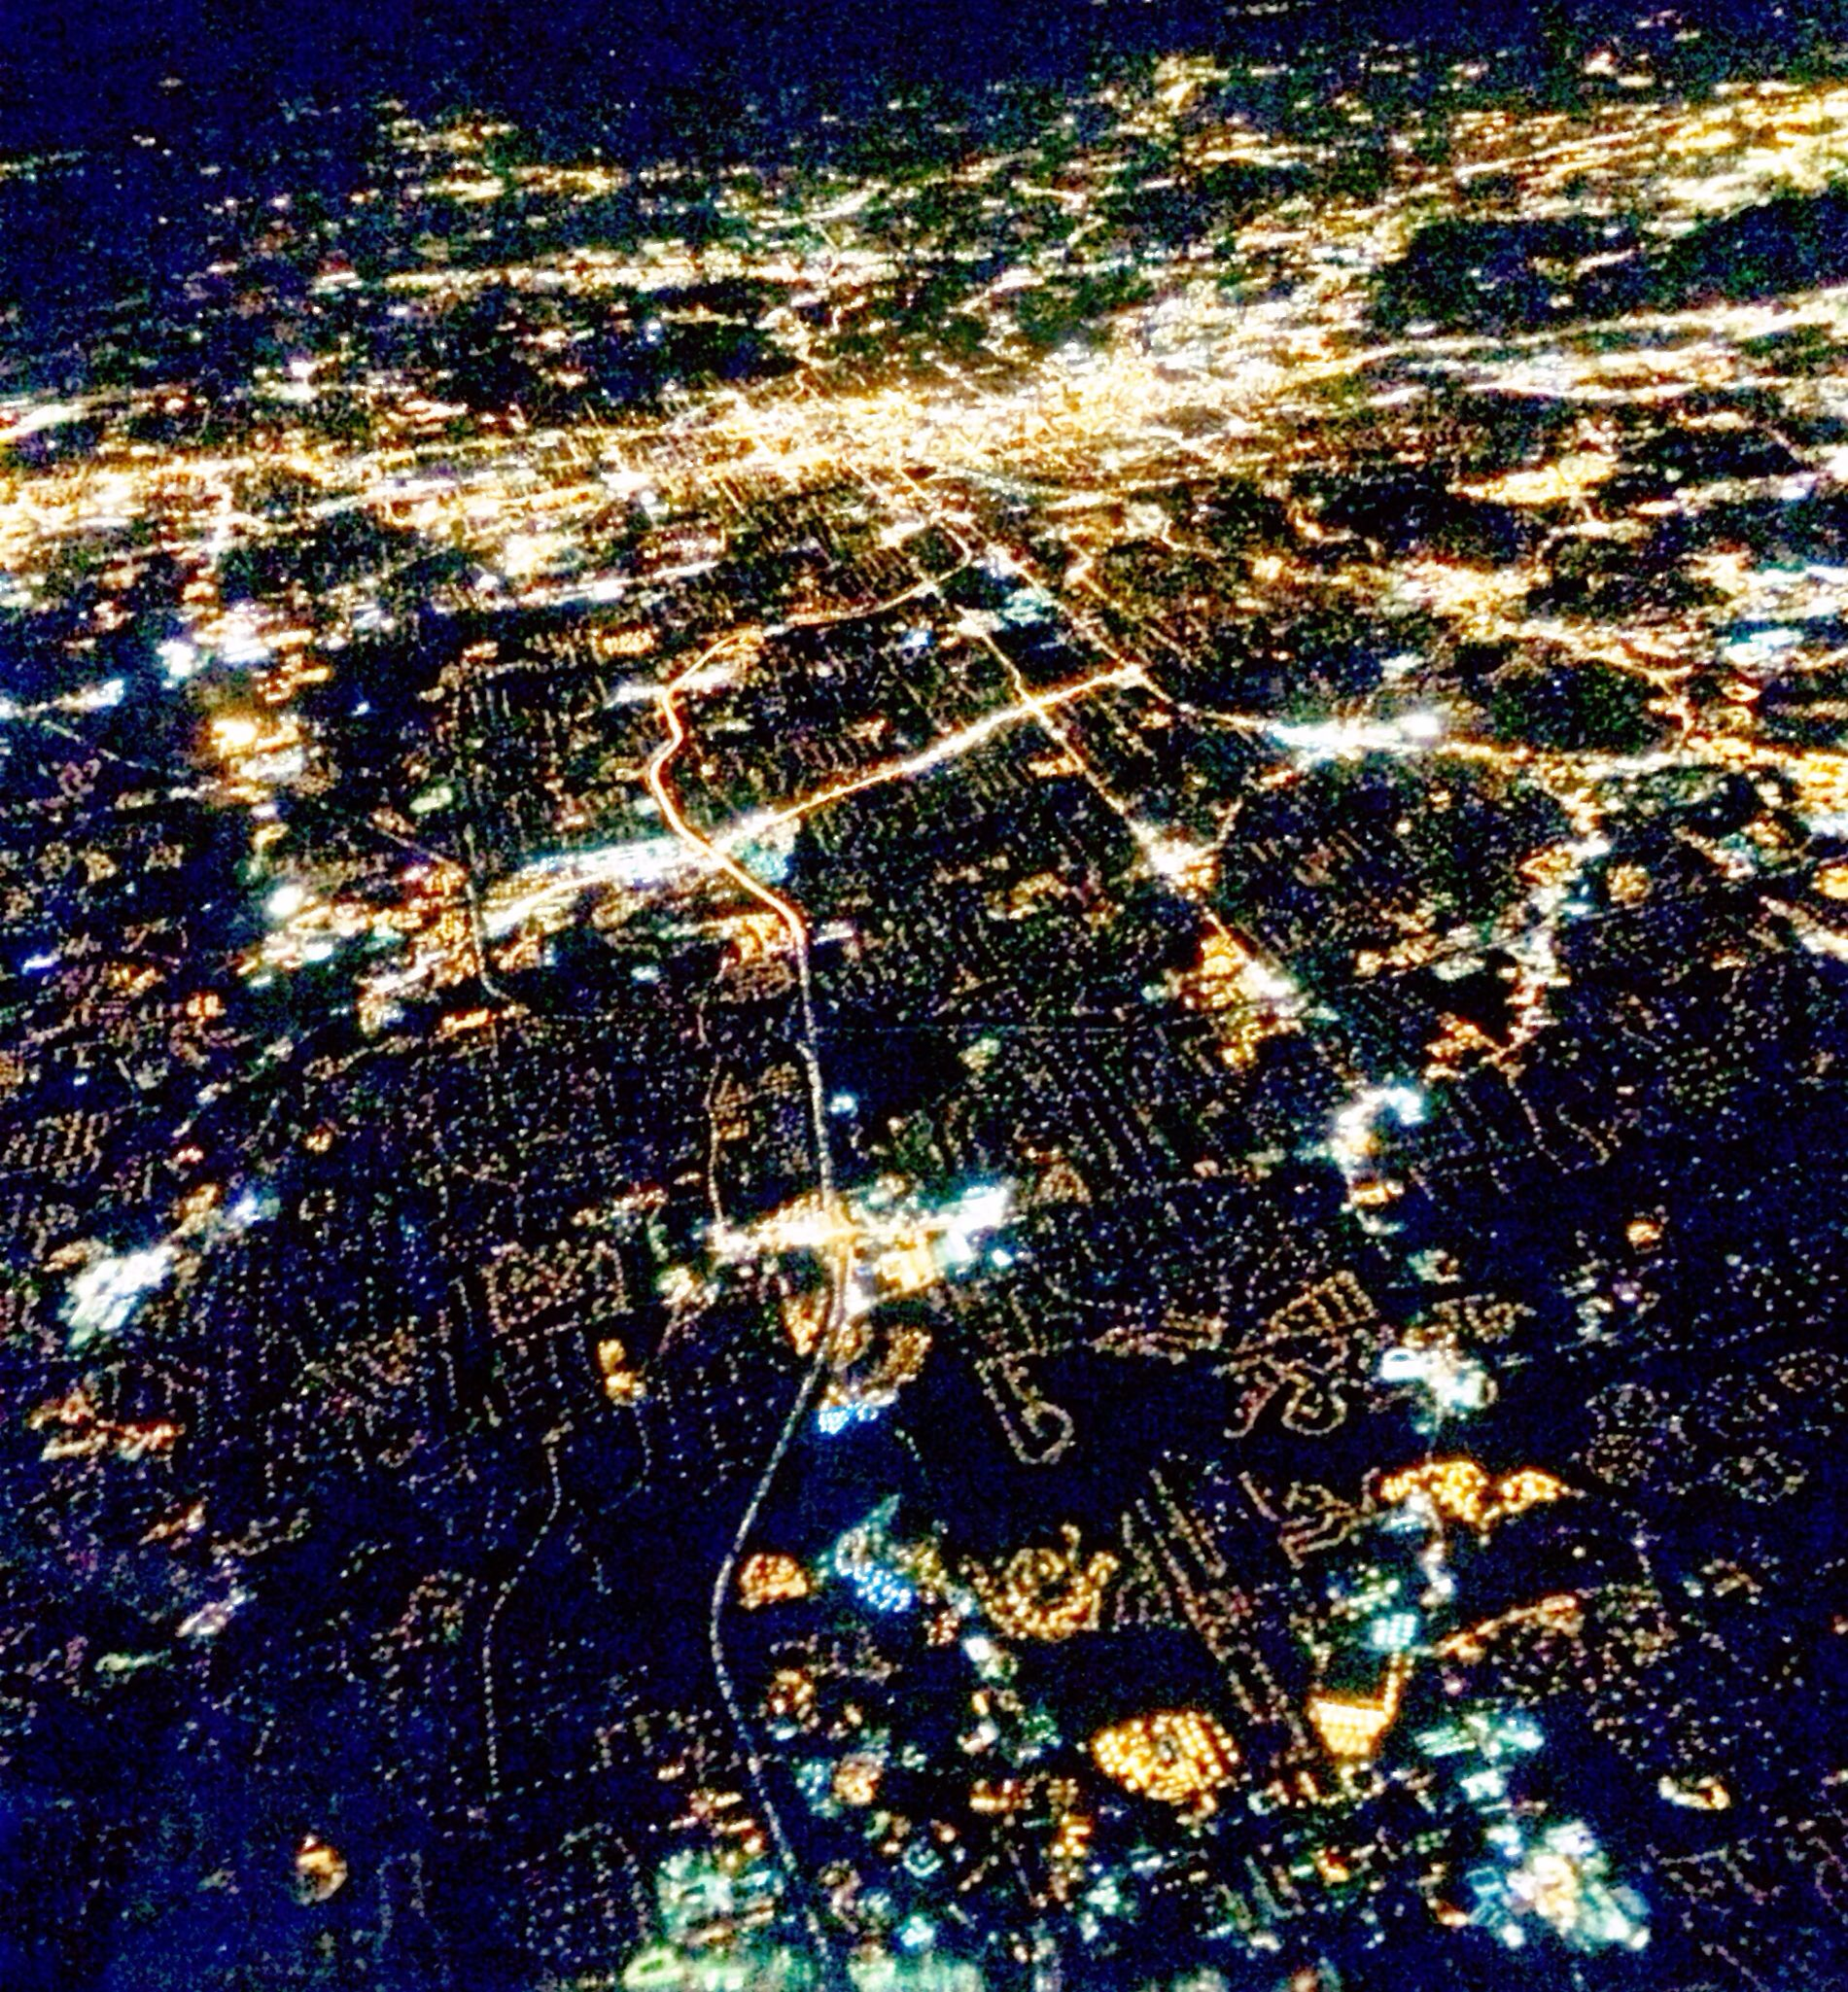 Atlanta at night #love #traveling #atlanta